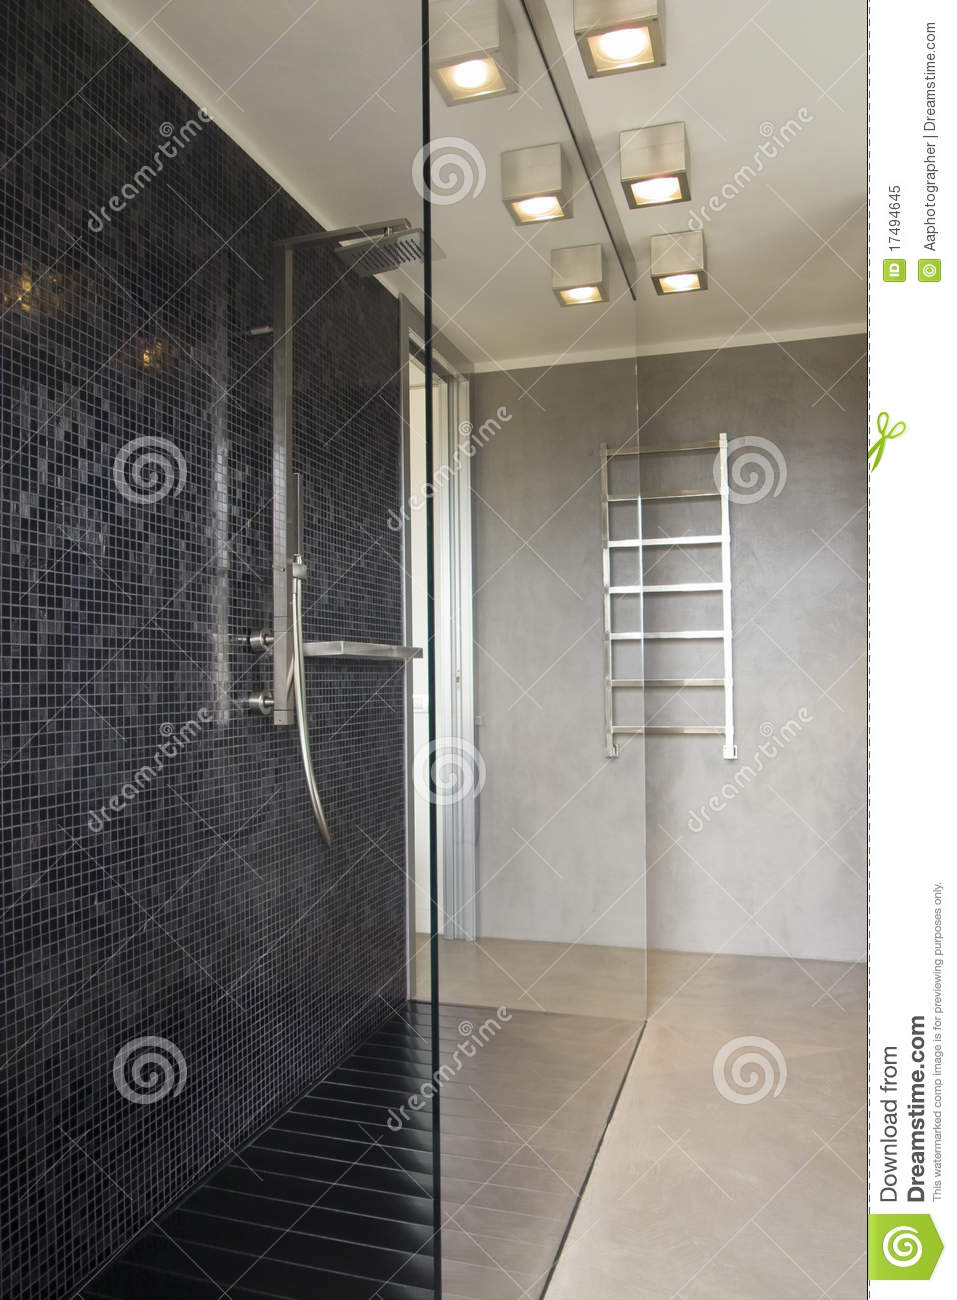 Douche in moderne badkamers royalty vrije stock foto beeld 17494645 - Moderne douche fotos ...